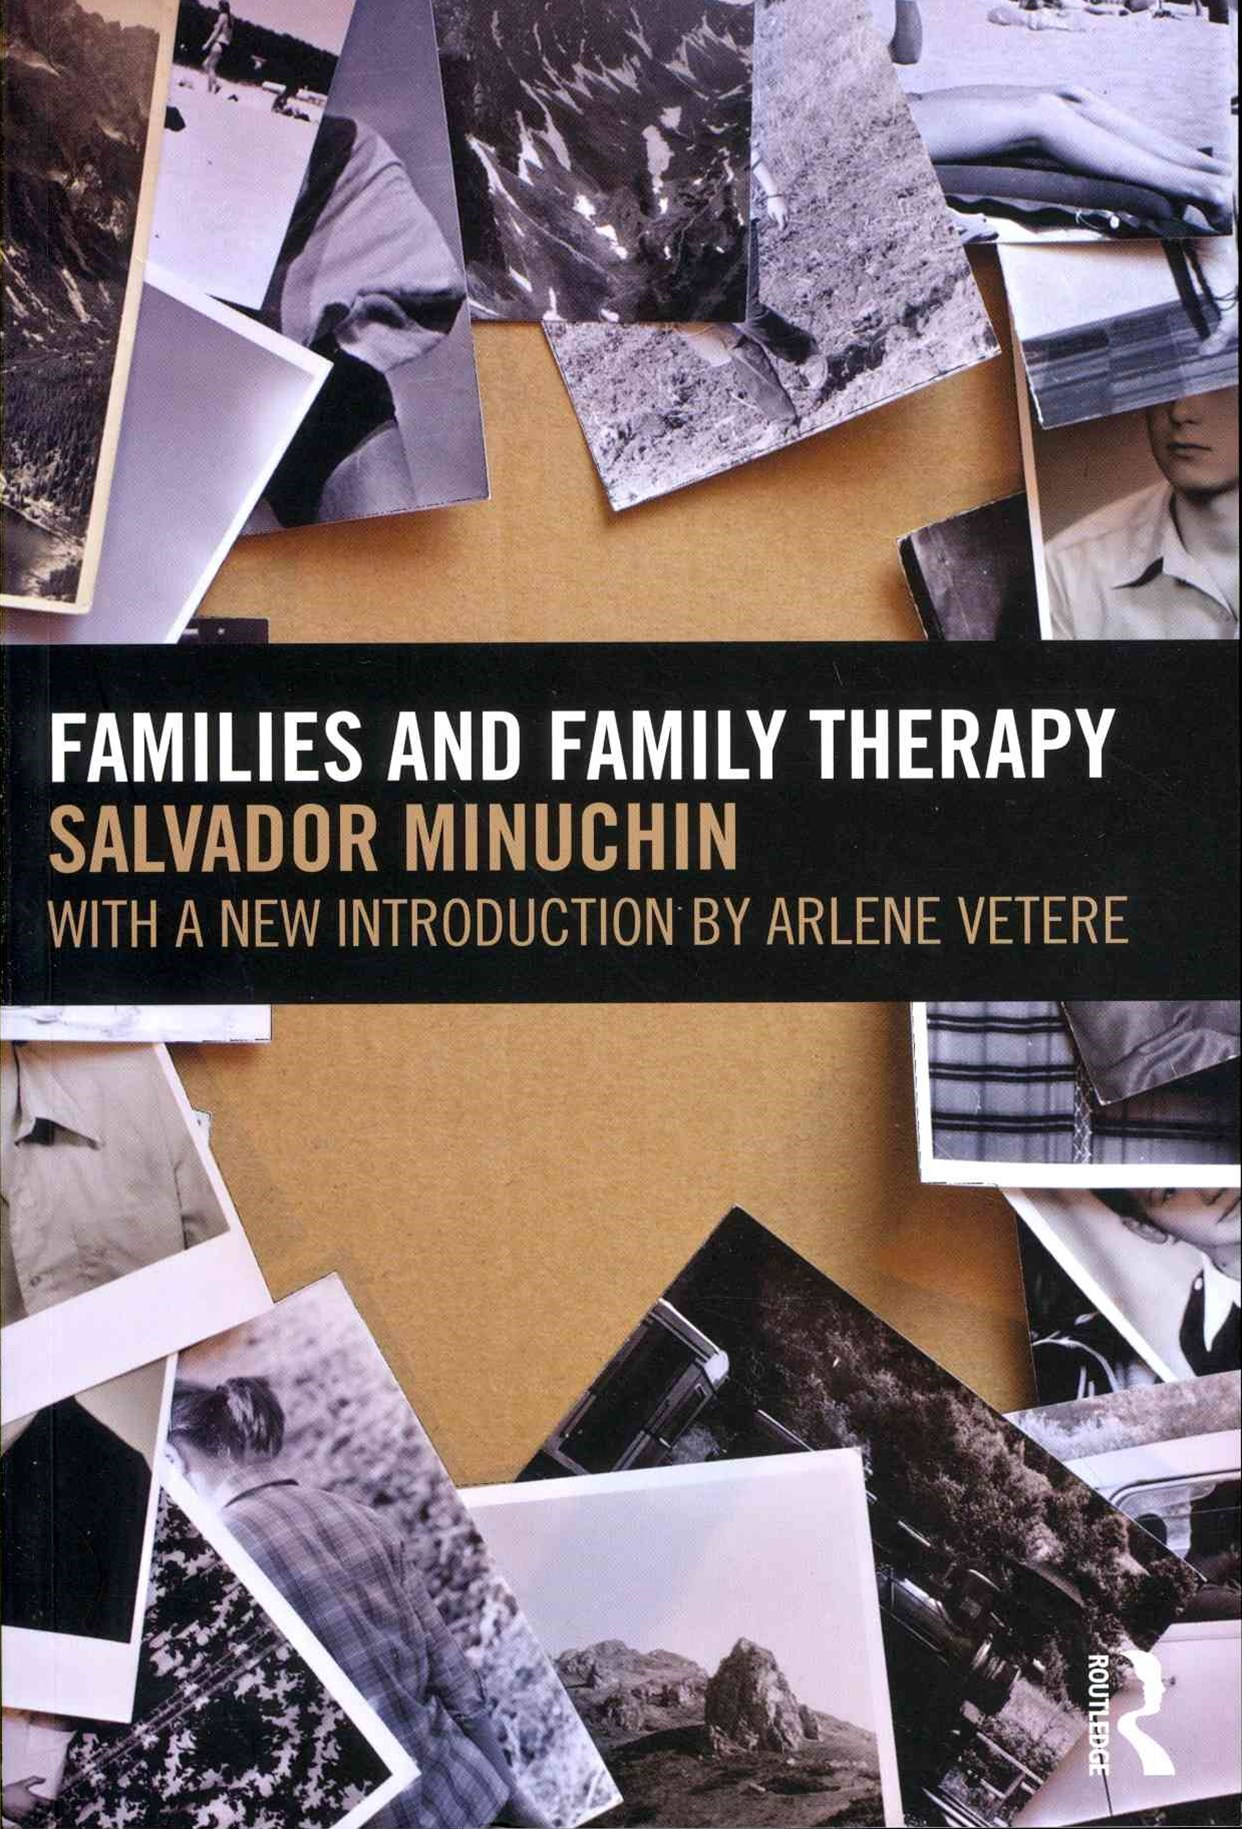 Families and Family Therapy